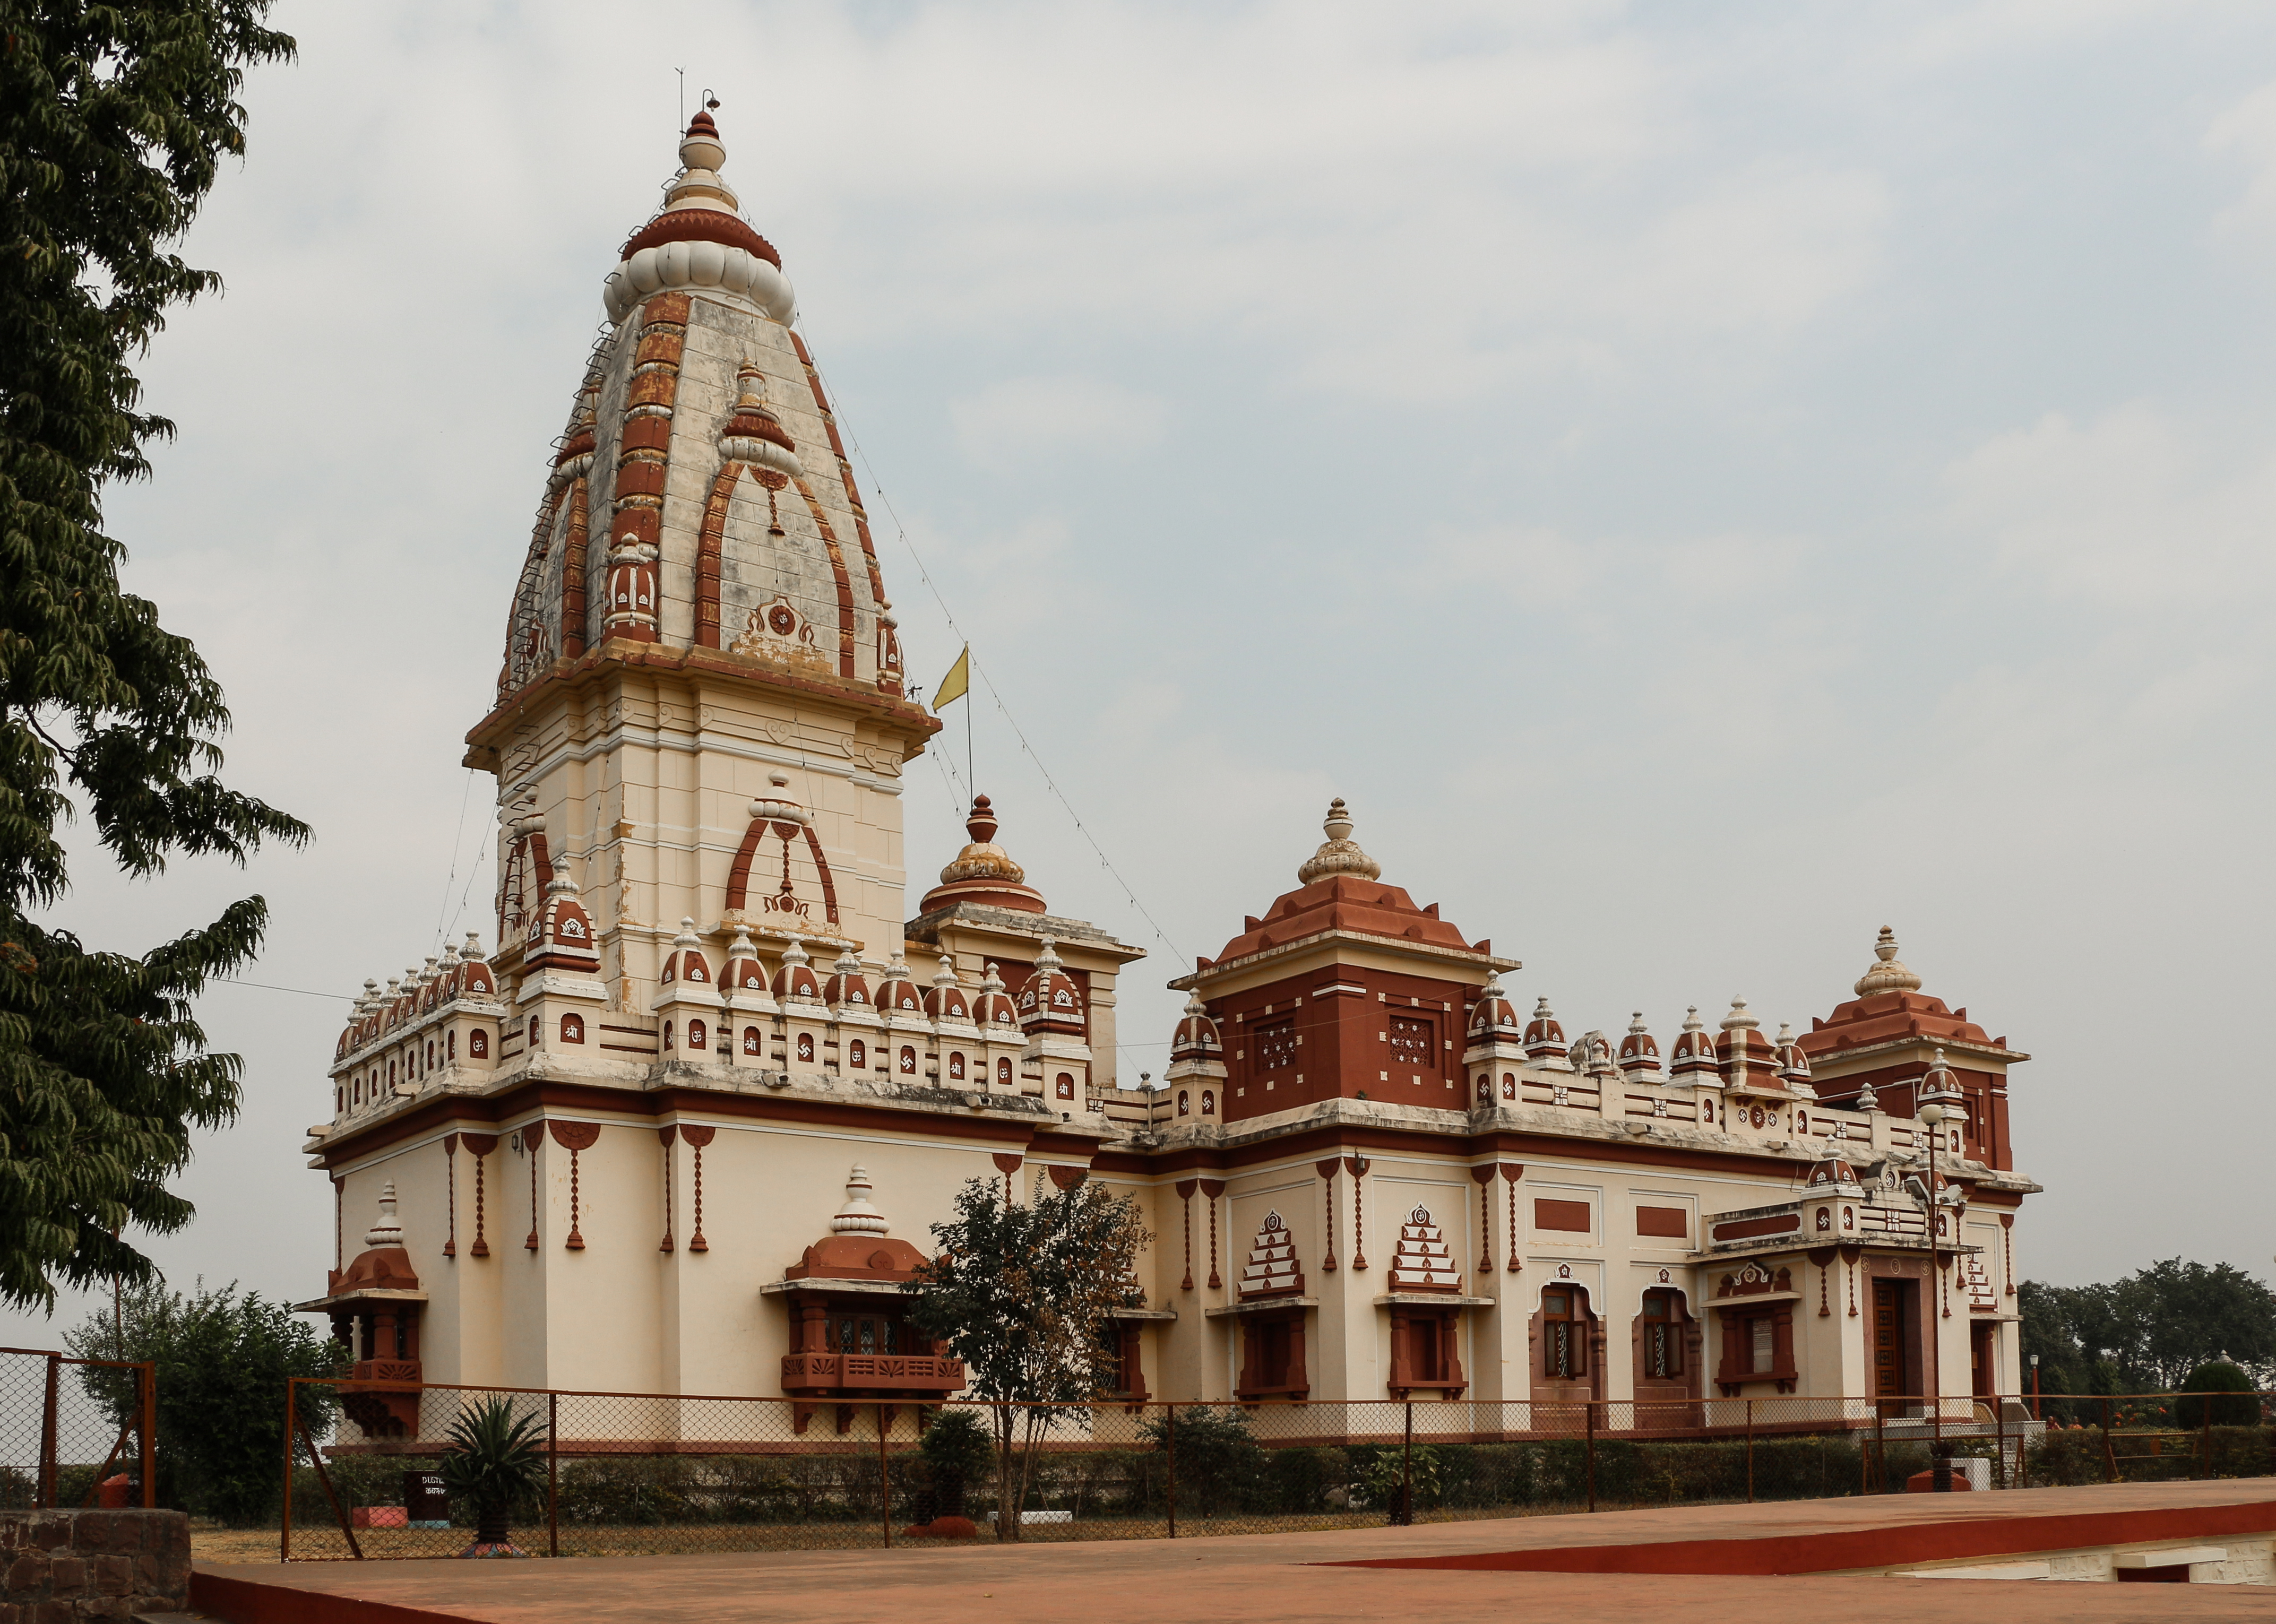 Birla Mandir at Bhopal